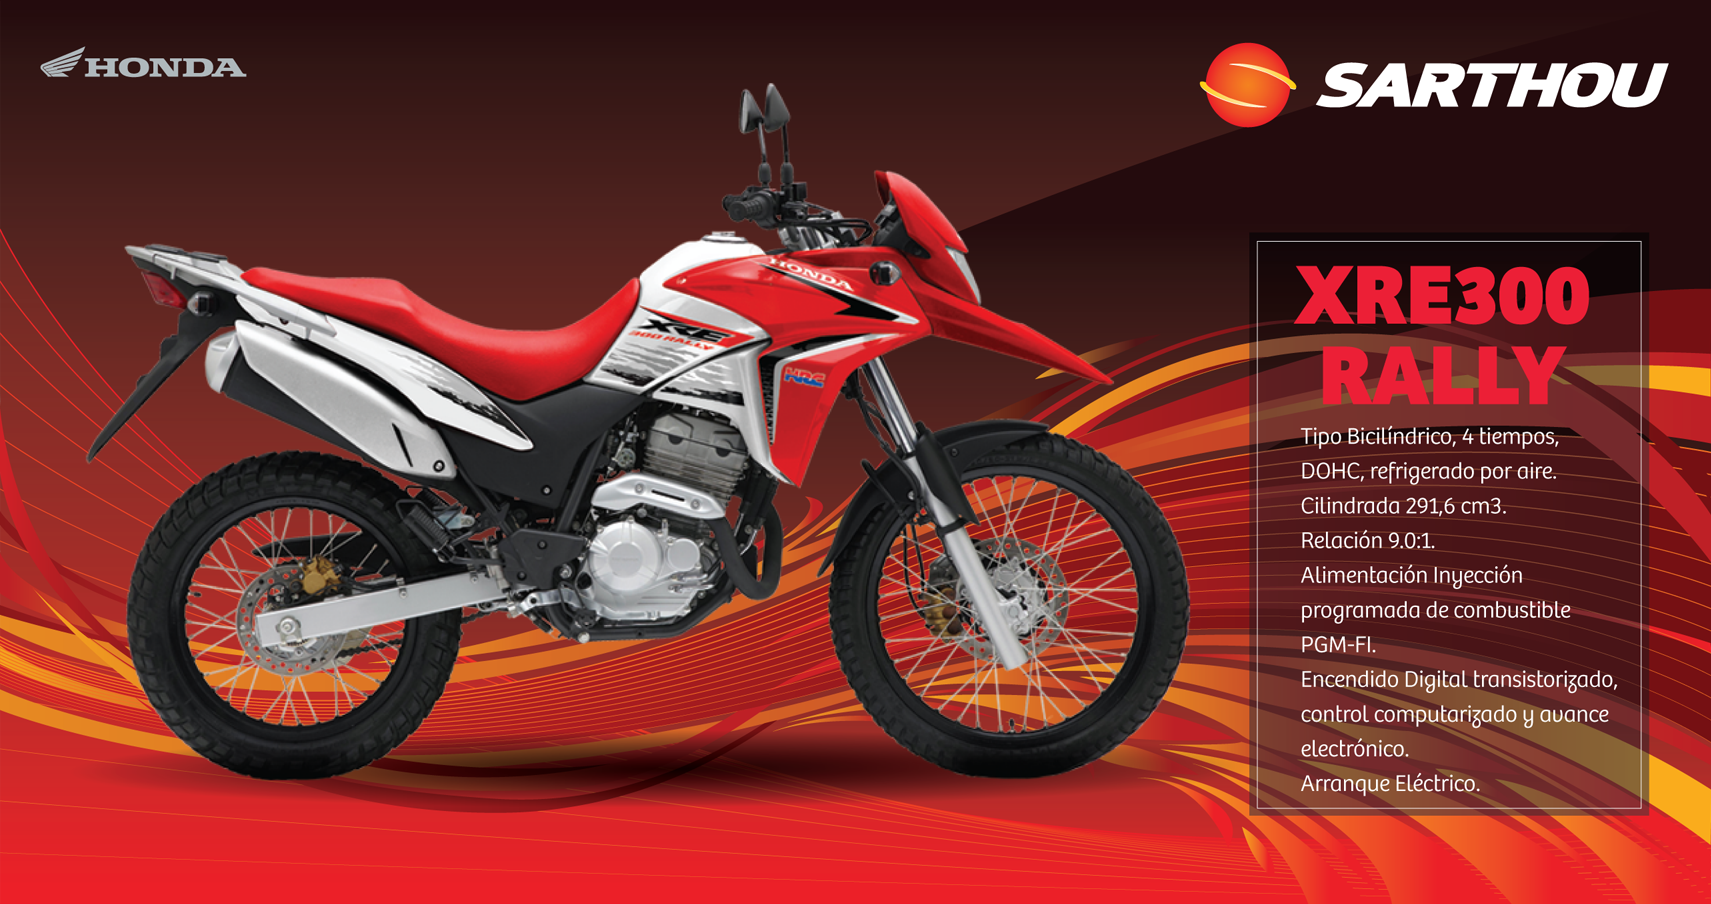 Xre 300 Rally Vehicles Motorcycle